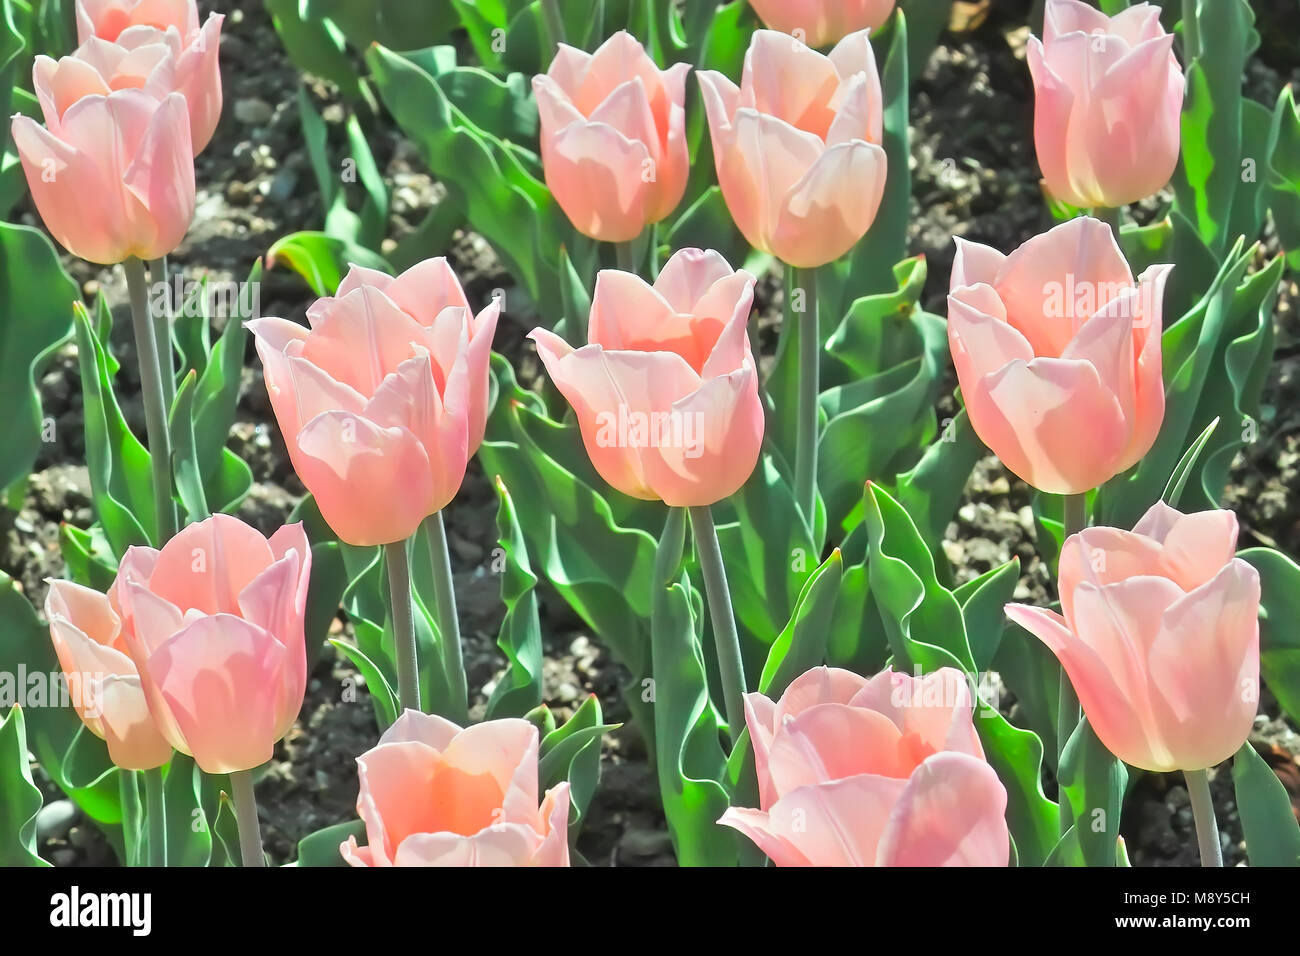 Tulip Apricot Beauty (Tulipa, Liliaceae), flowers in spring - Stock Image